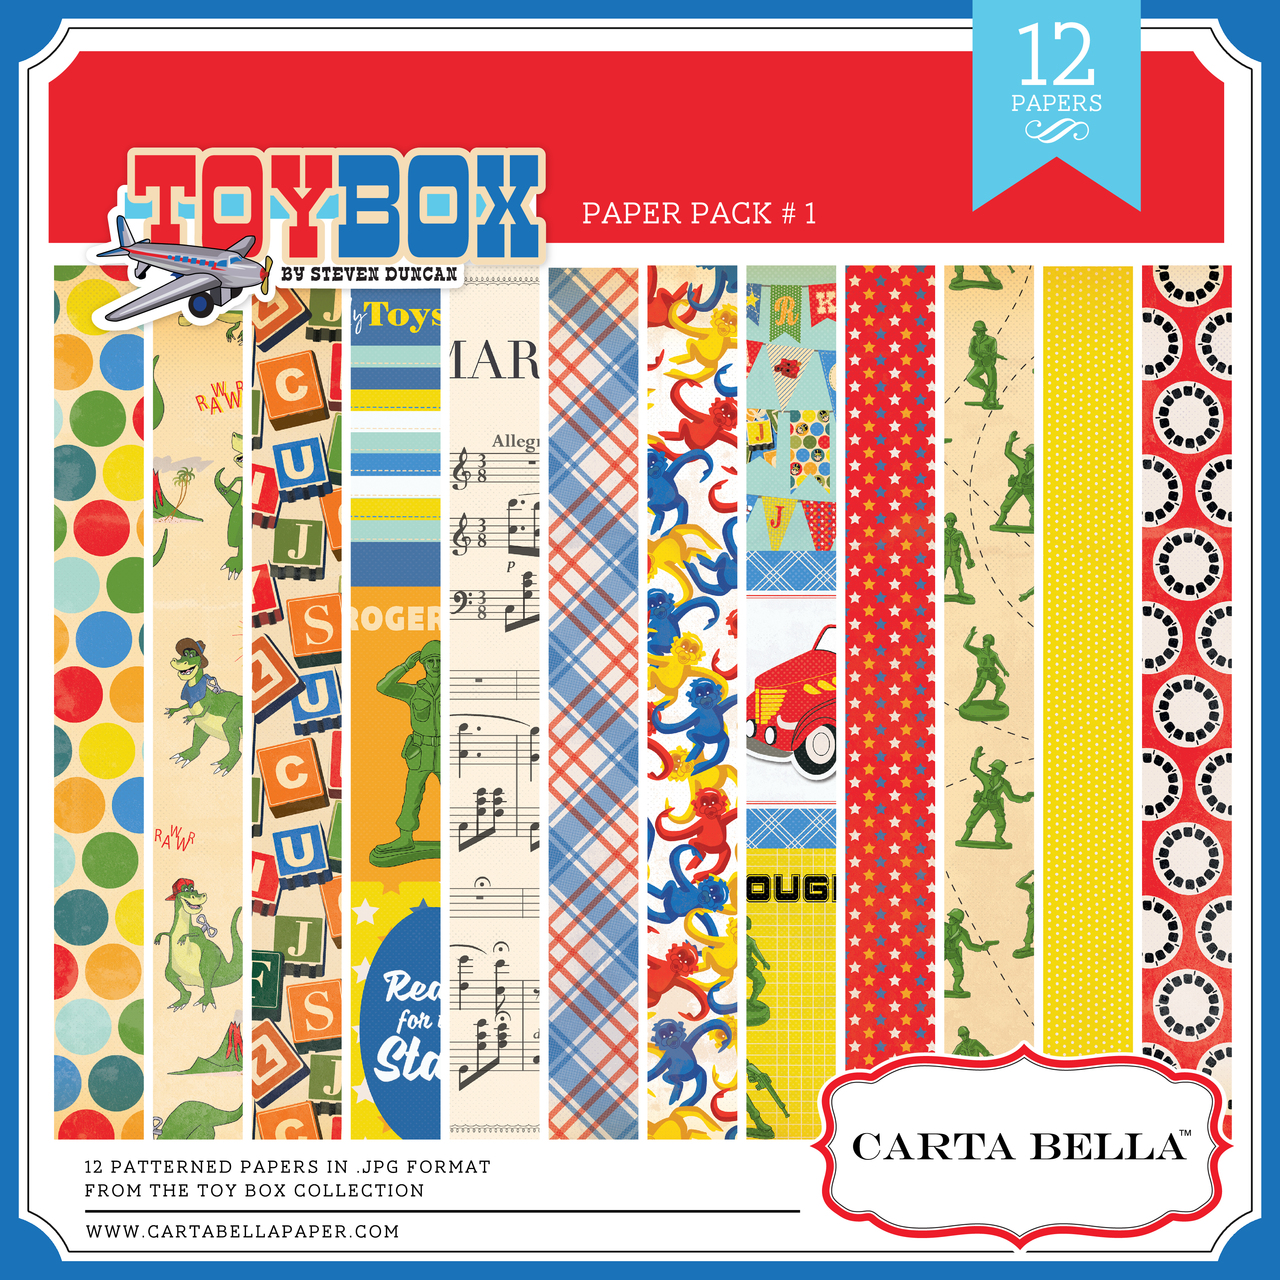 Toy Box Paper Pack #1